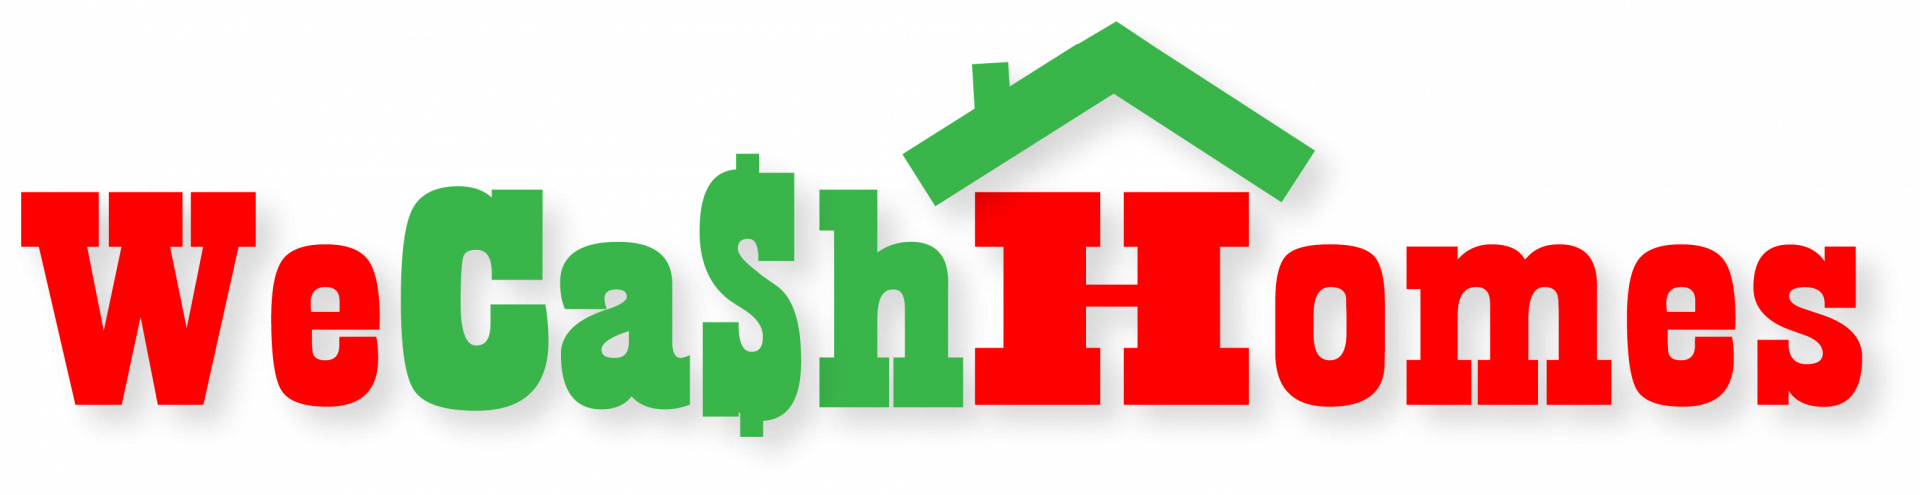 WE CASH HOMES… logo